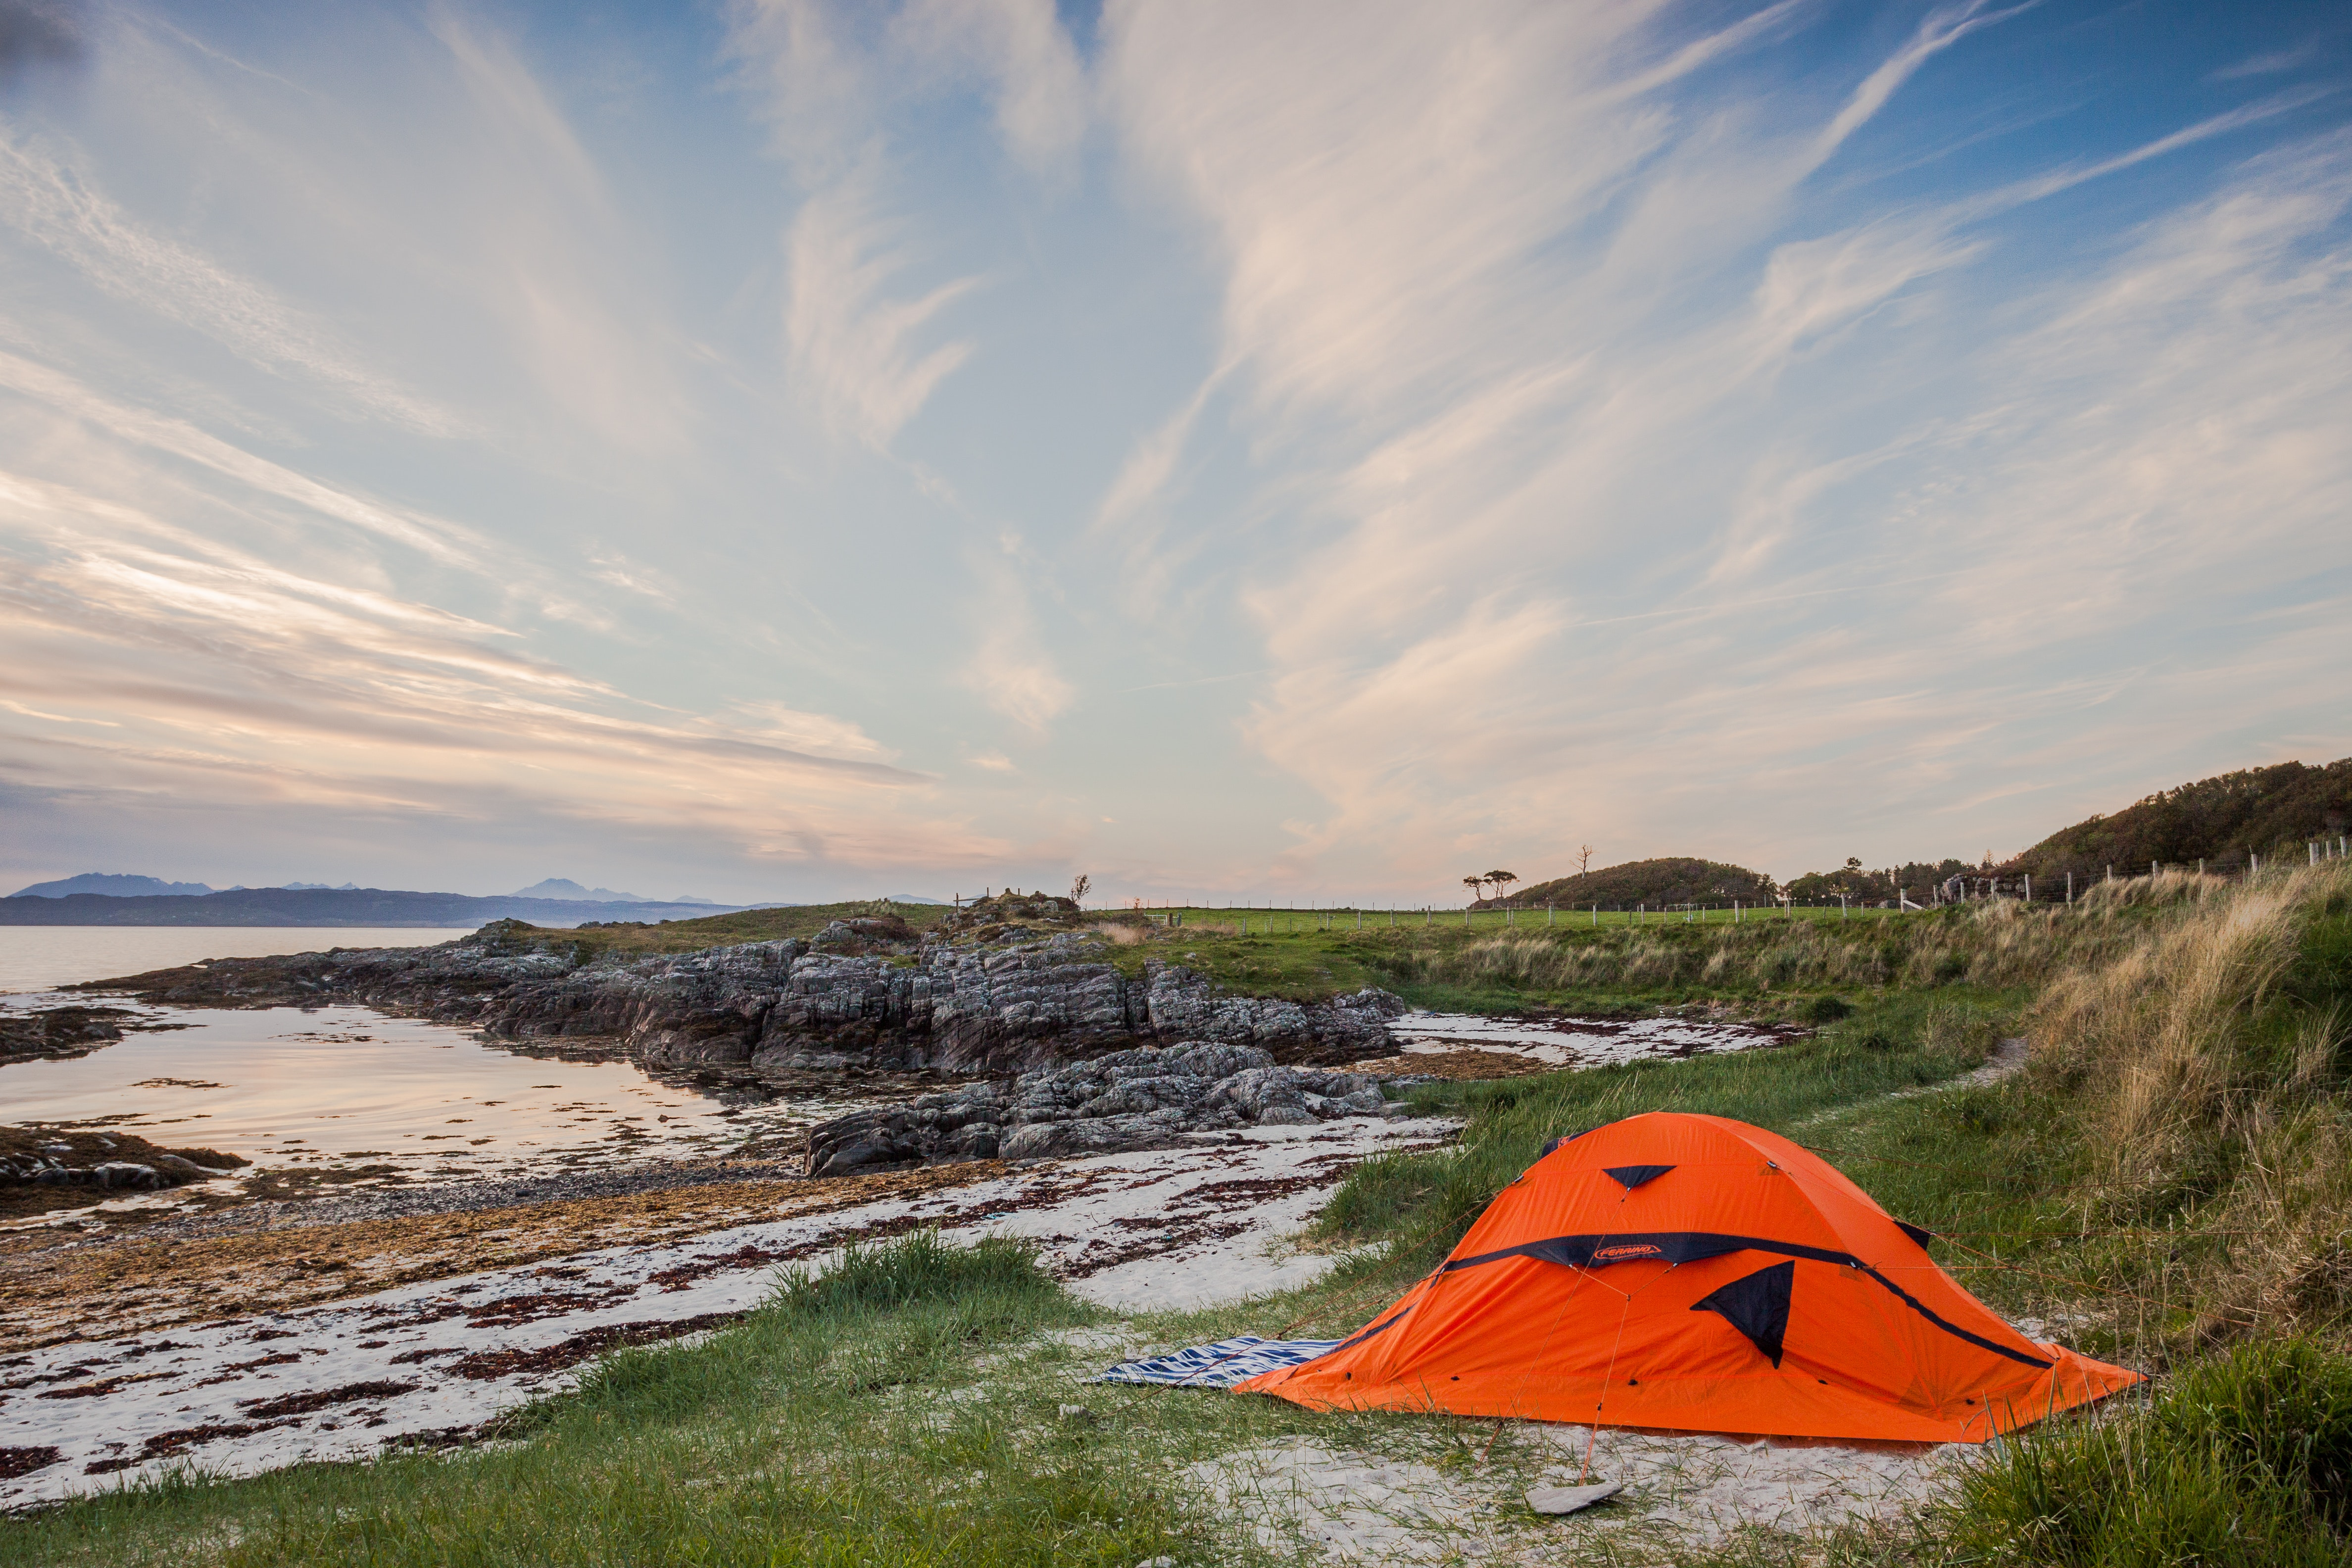 Orange camping tent near body of water during daytime photo